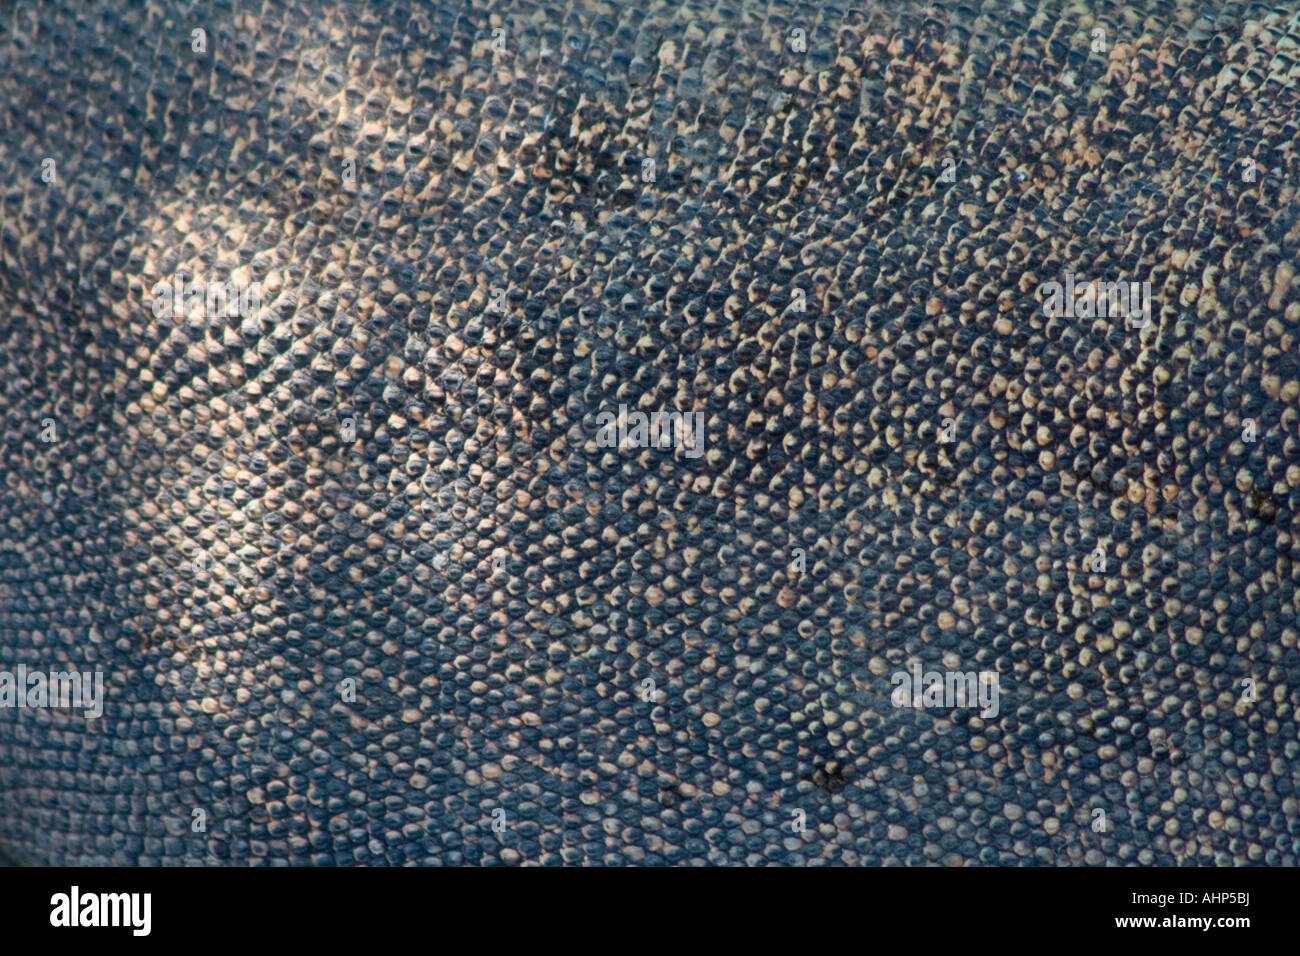 Closeup Texture Komodo Dragon Skin - Stock Image